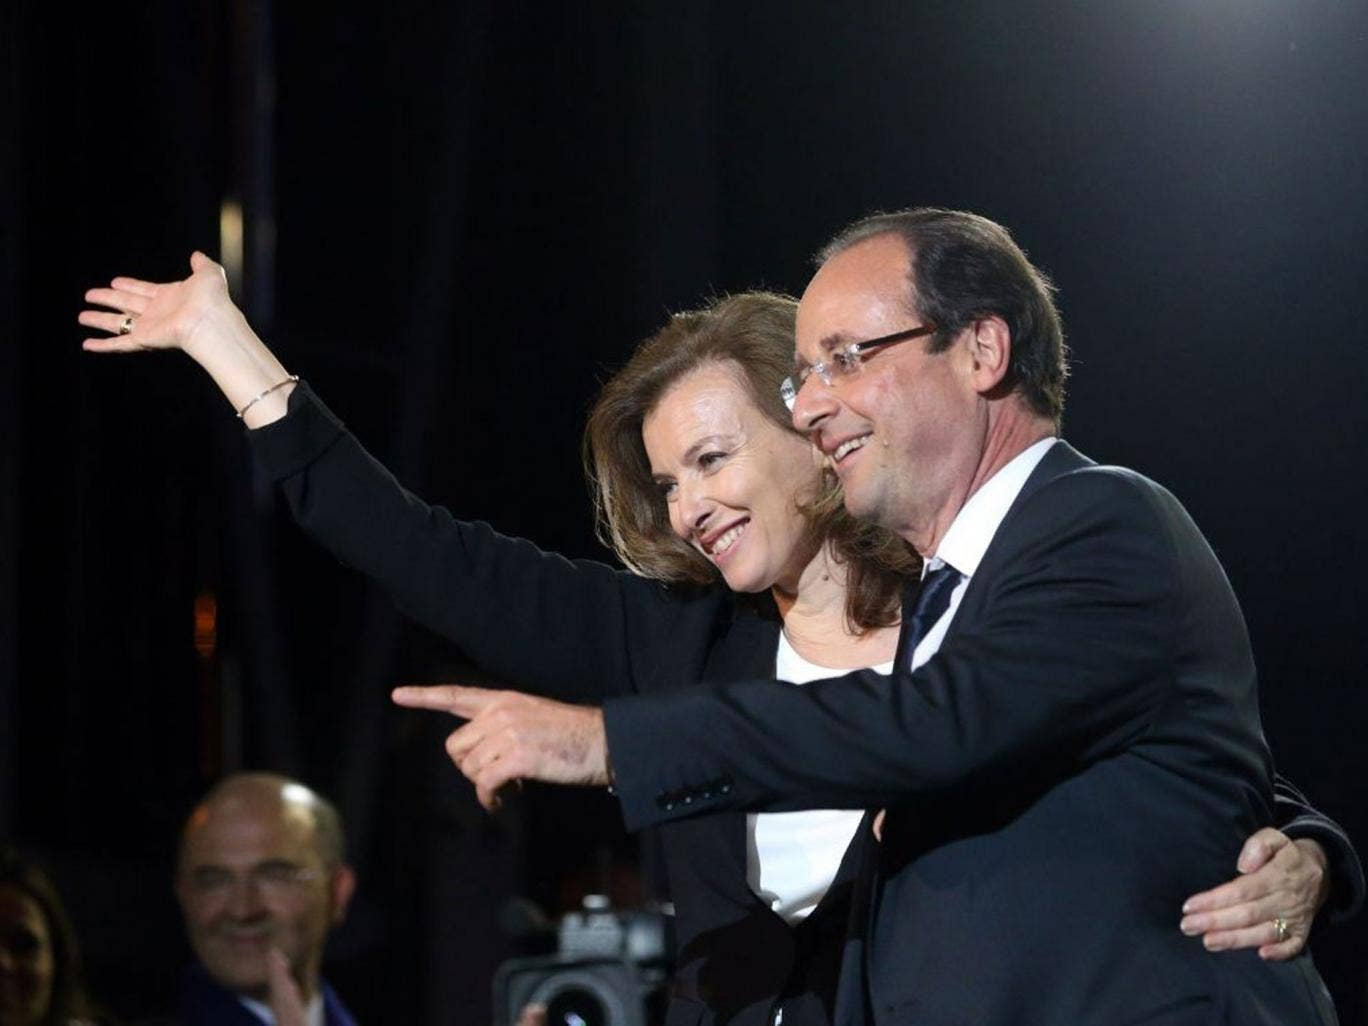 Francois Hollande and his then partner Valerie Trierweiler greet thousands of gathered supporters at Place de la Bastille after victory in French Presidential Elections on May, 2012